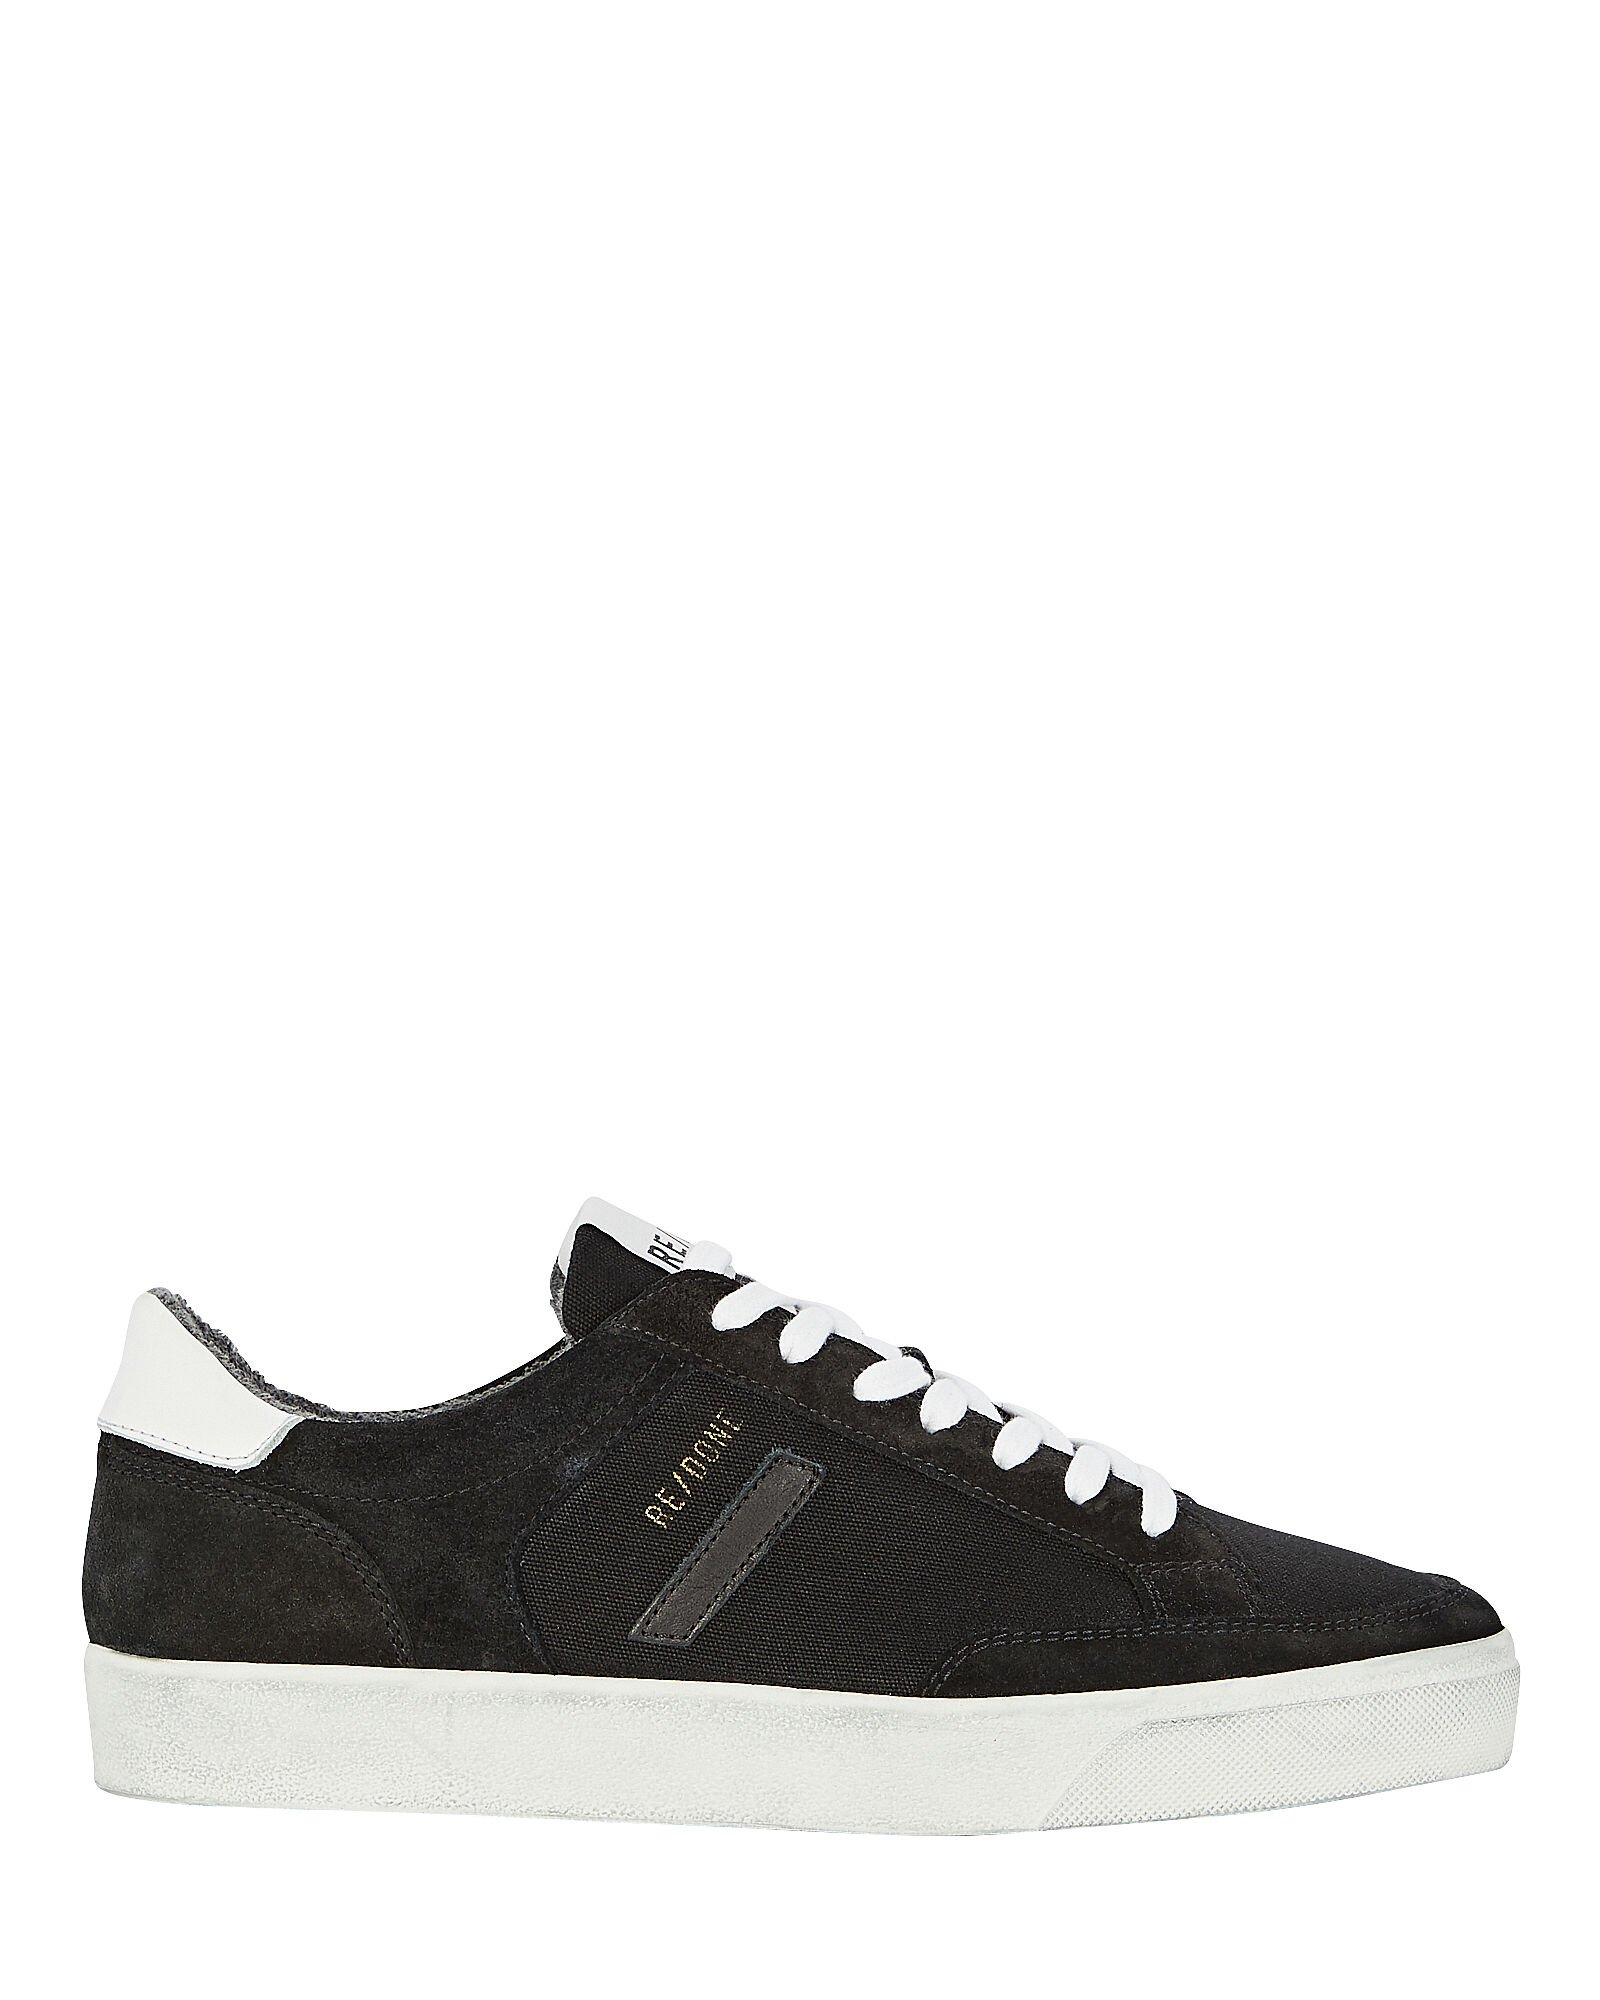 90s Suede Skate Sneakers, BLACK, hi-res